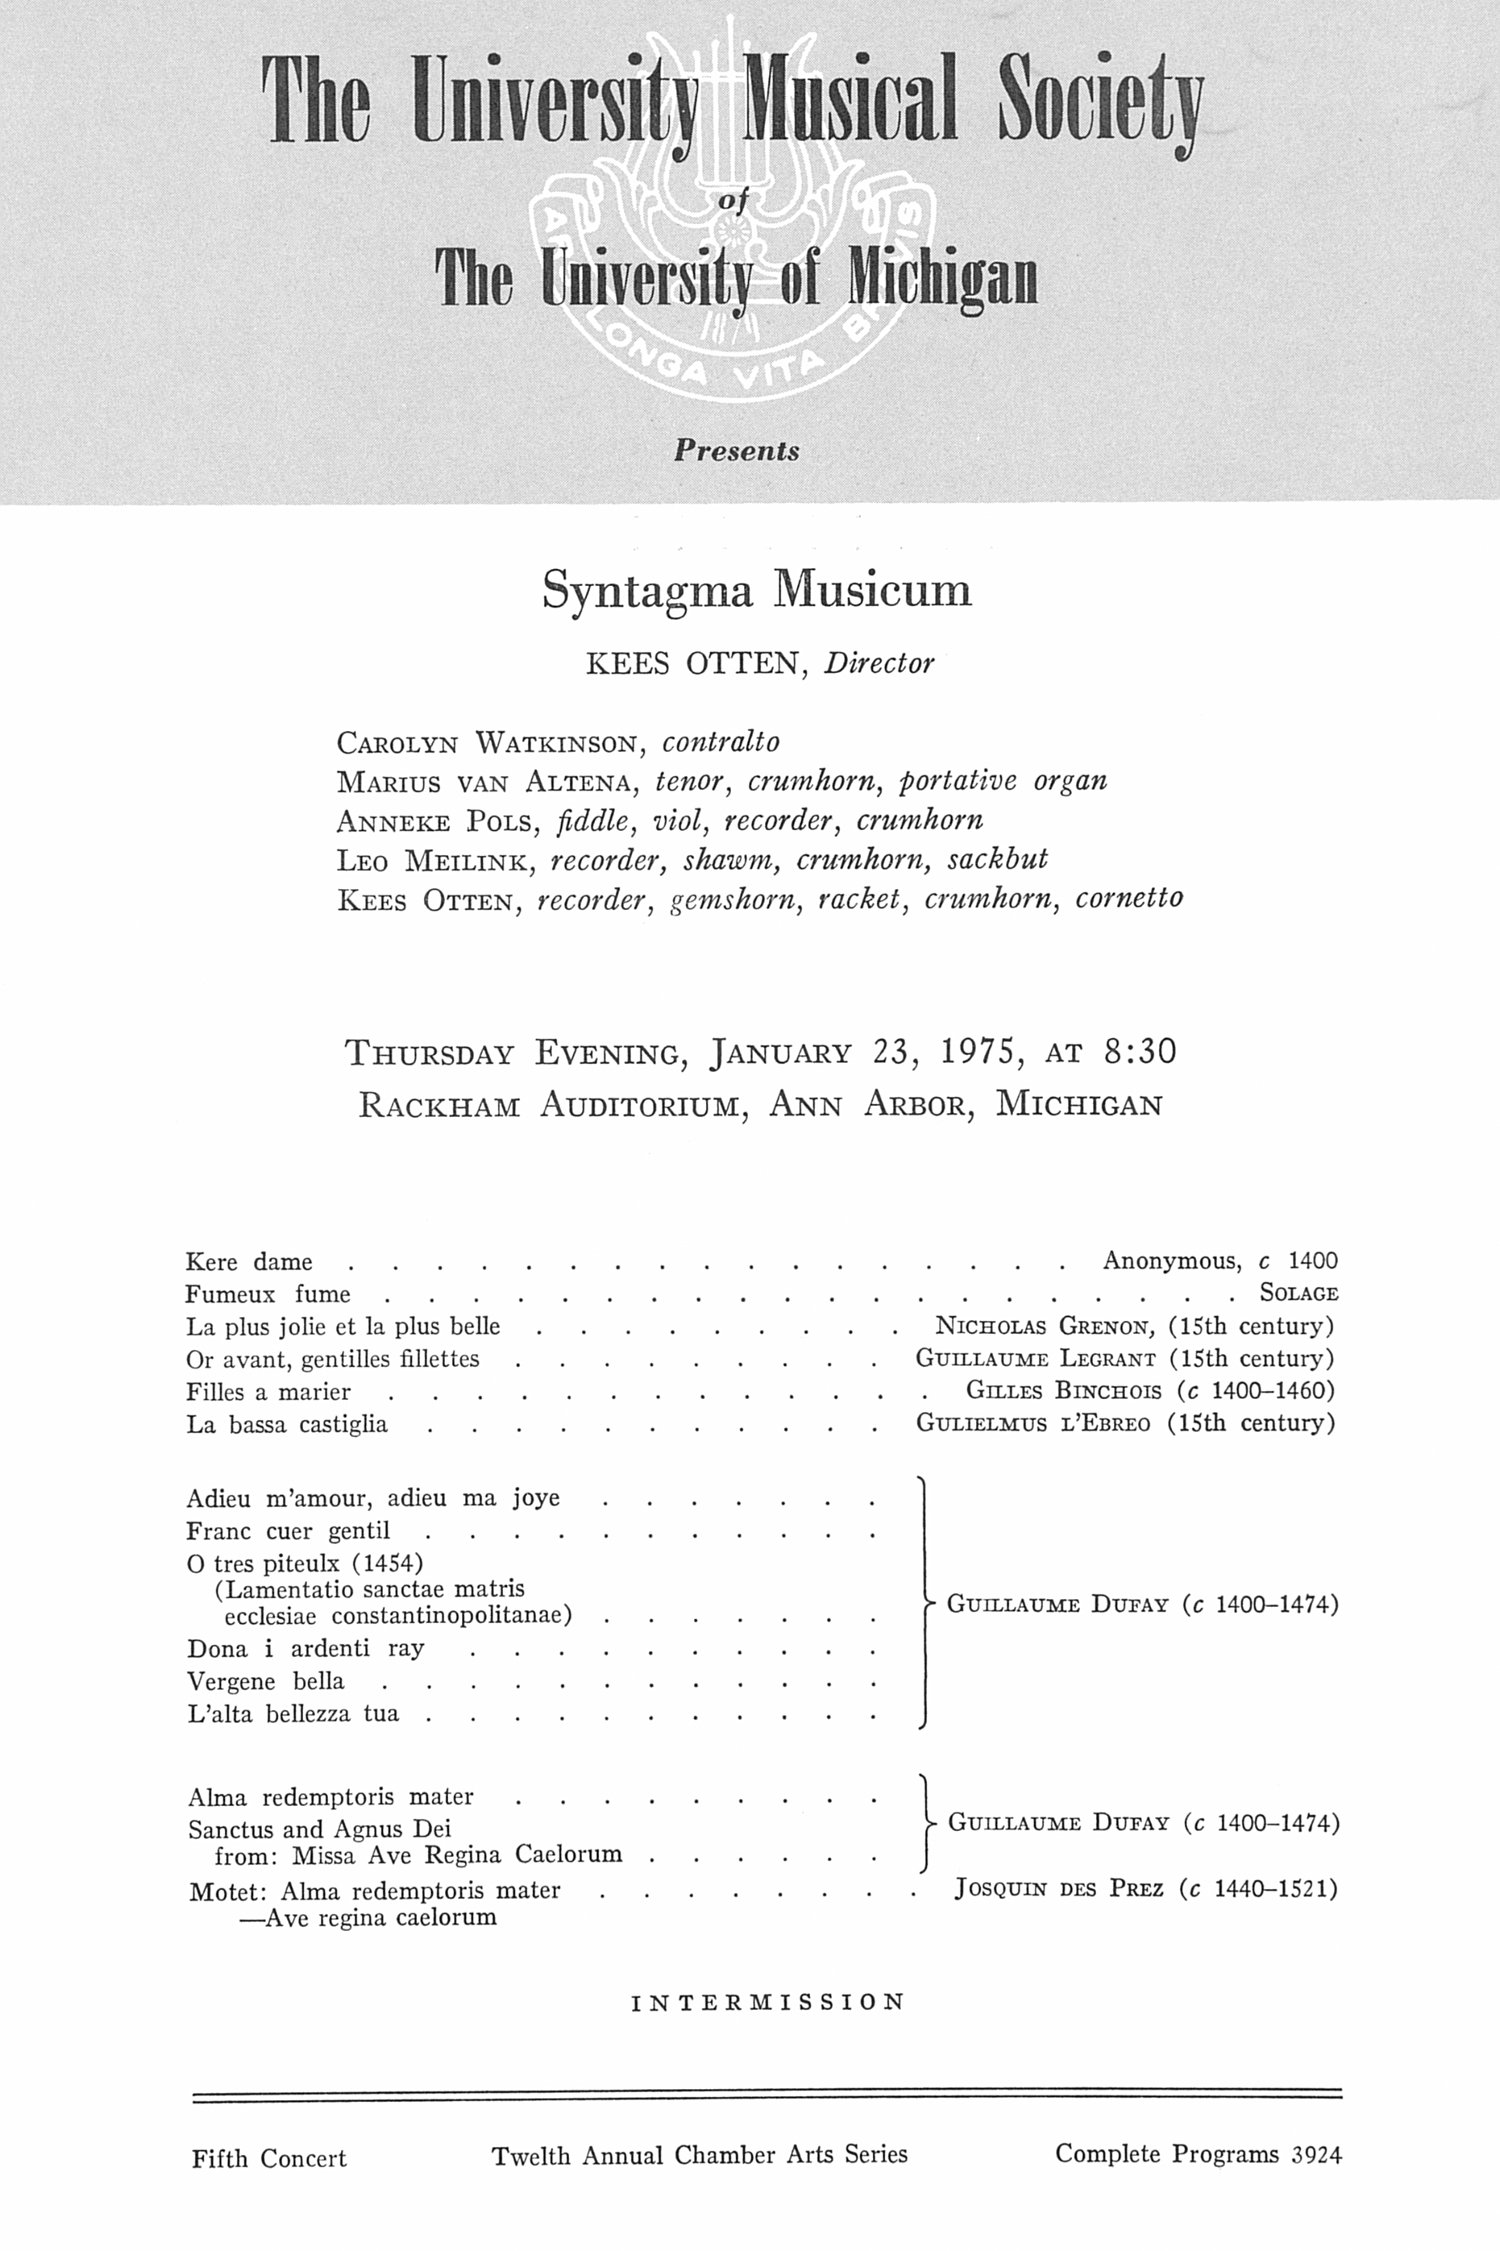 UMS Concert Program, January 23, 1975: Syntagma Musicum -- Kees Otten image